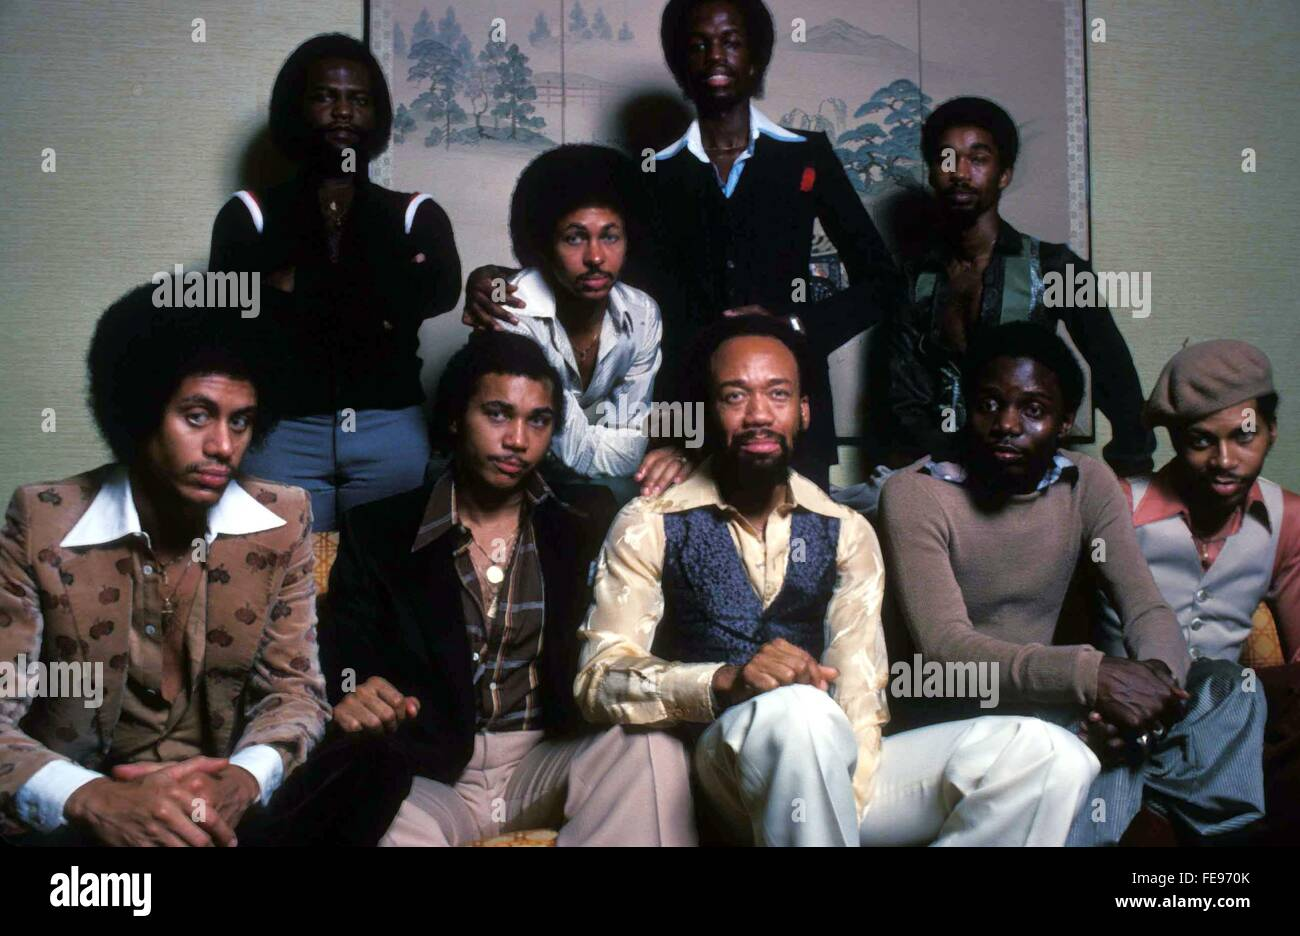 File. 4th Feb, 2016. MAURICE WHITE, Earth, Wind & Fire founder, has died at age 74 after a long battle with - Stock Image